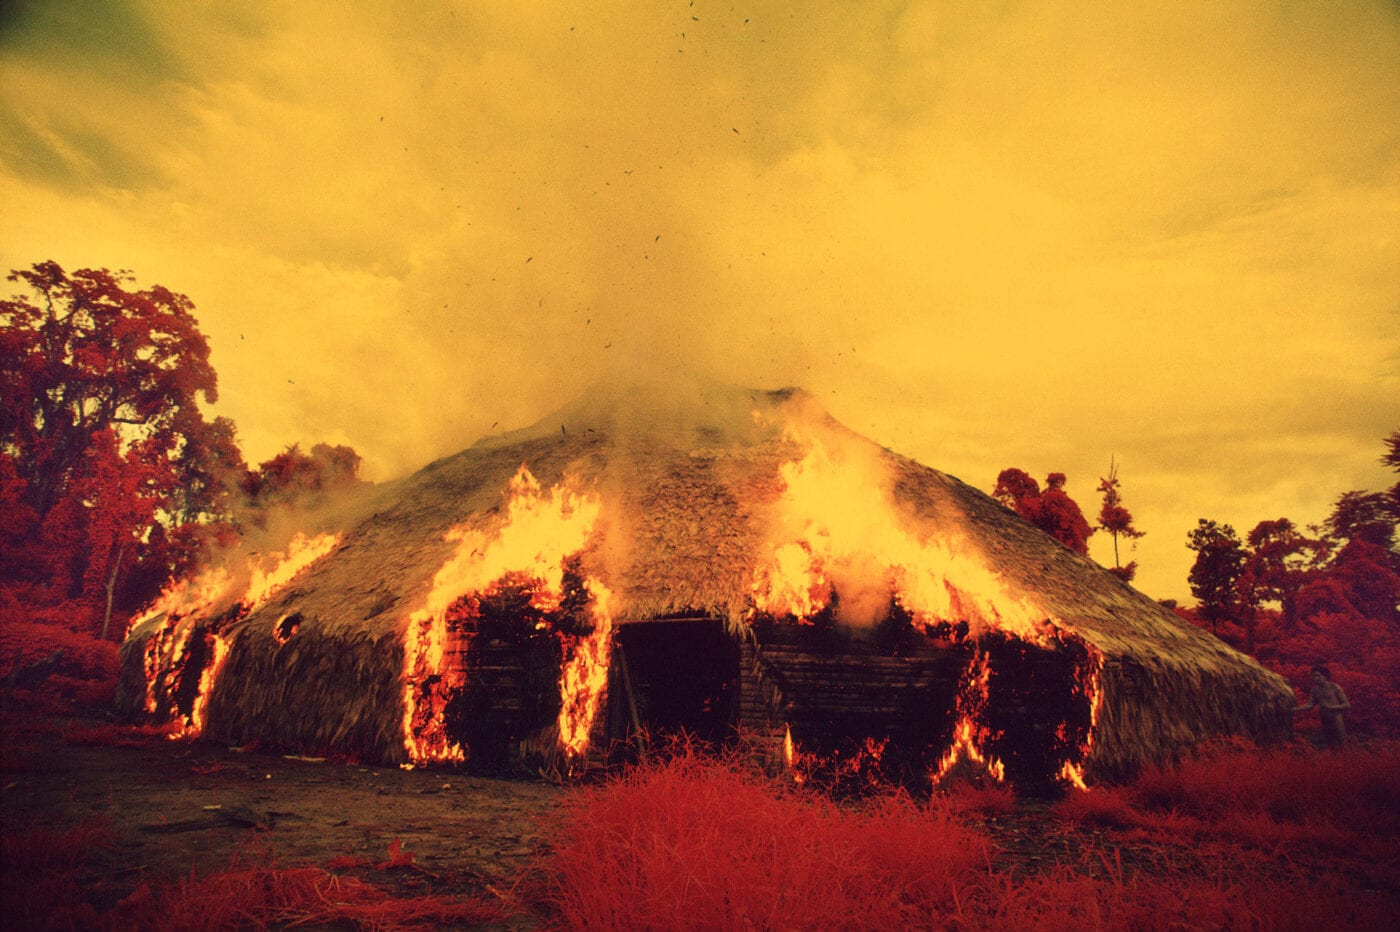 The Yanomami often burn down their yano [collective house] when they migrate, when they want to escape from an epidemic, or when an important leader dies. Catrimani, 1972-76. Infrared film. © Claudia Andujar